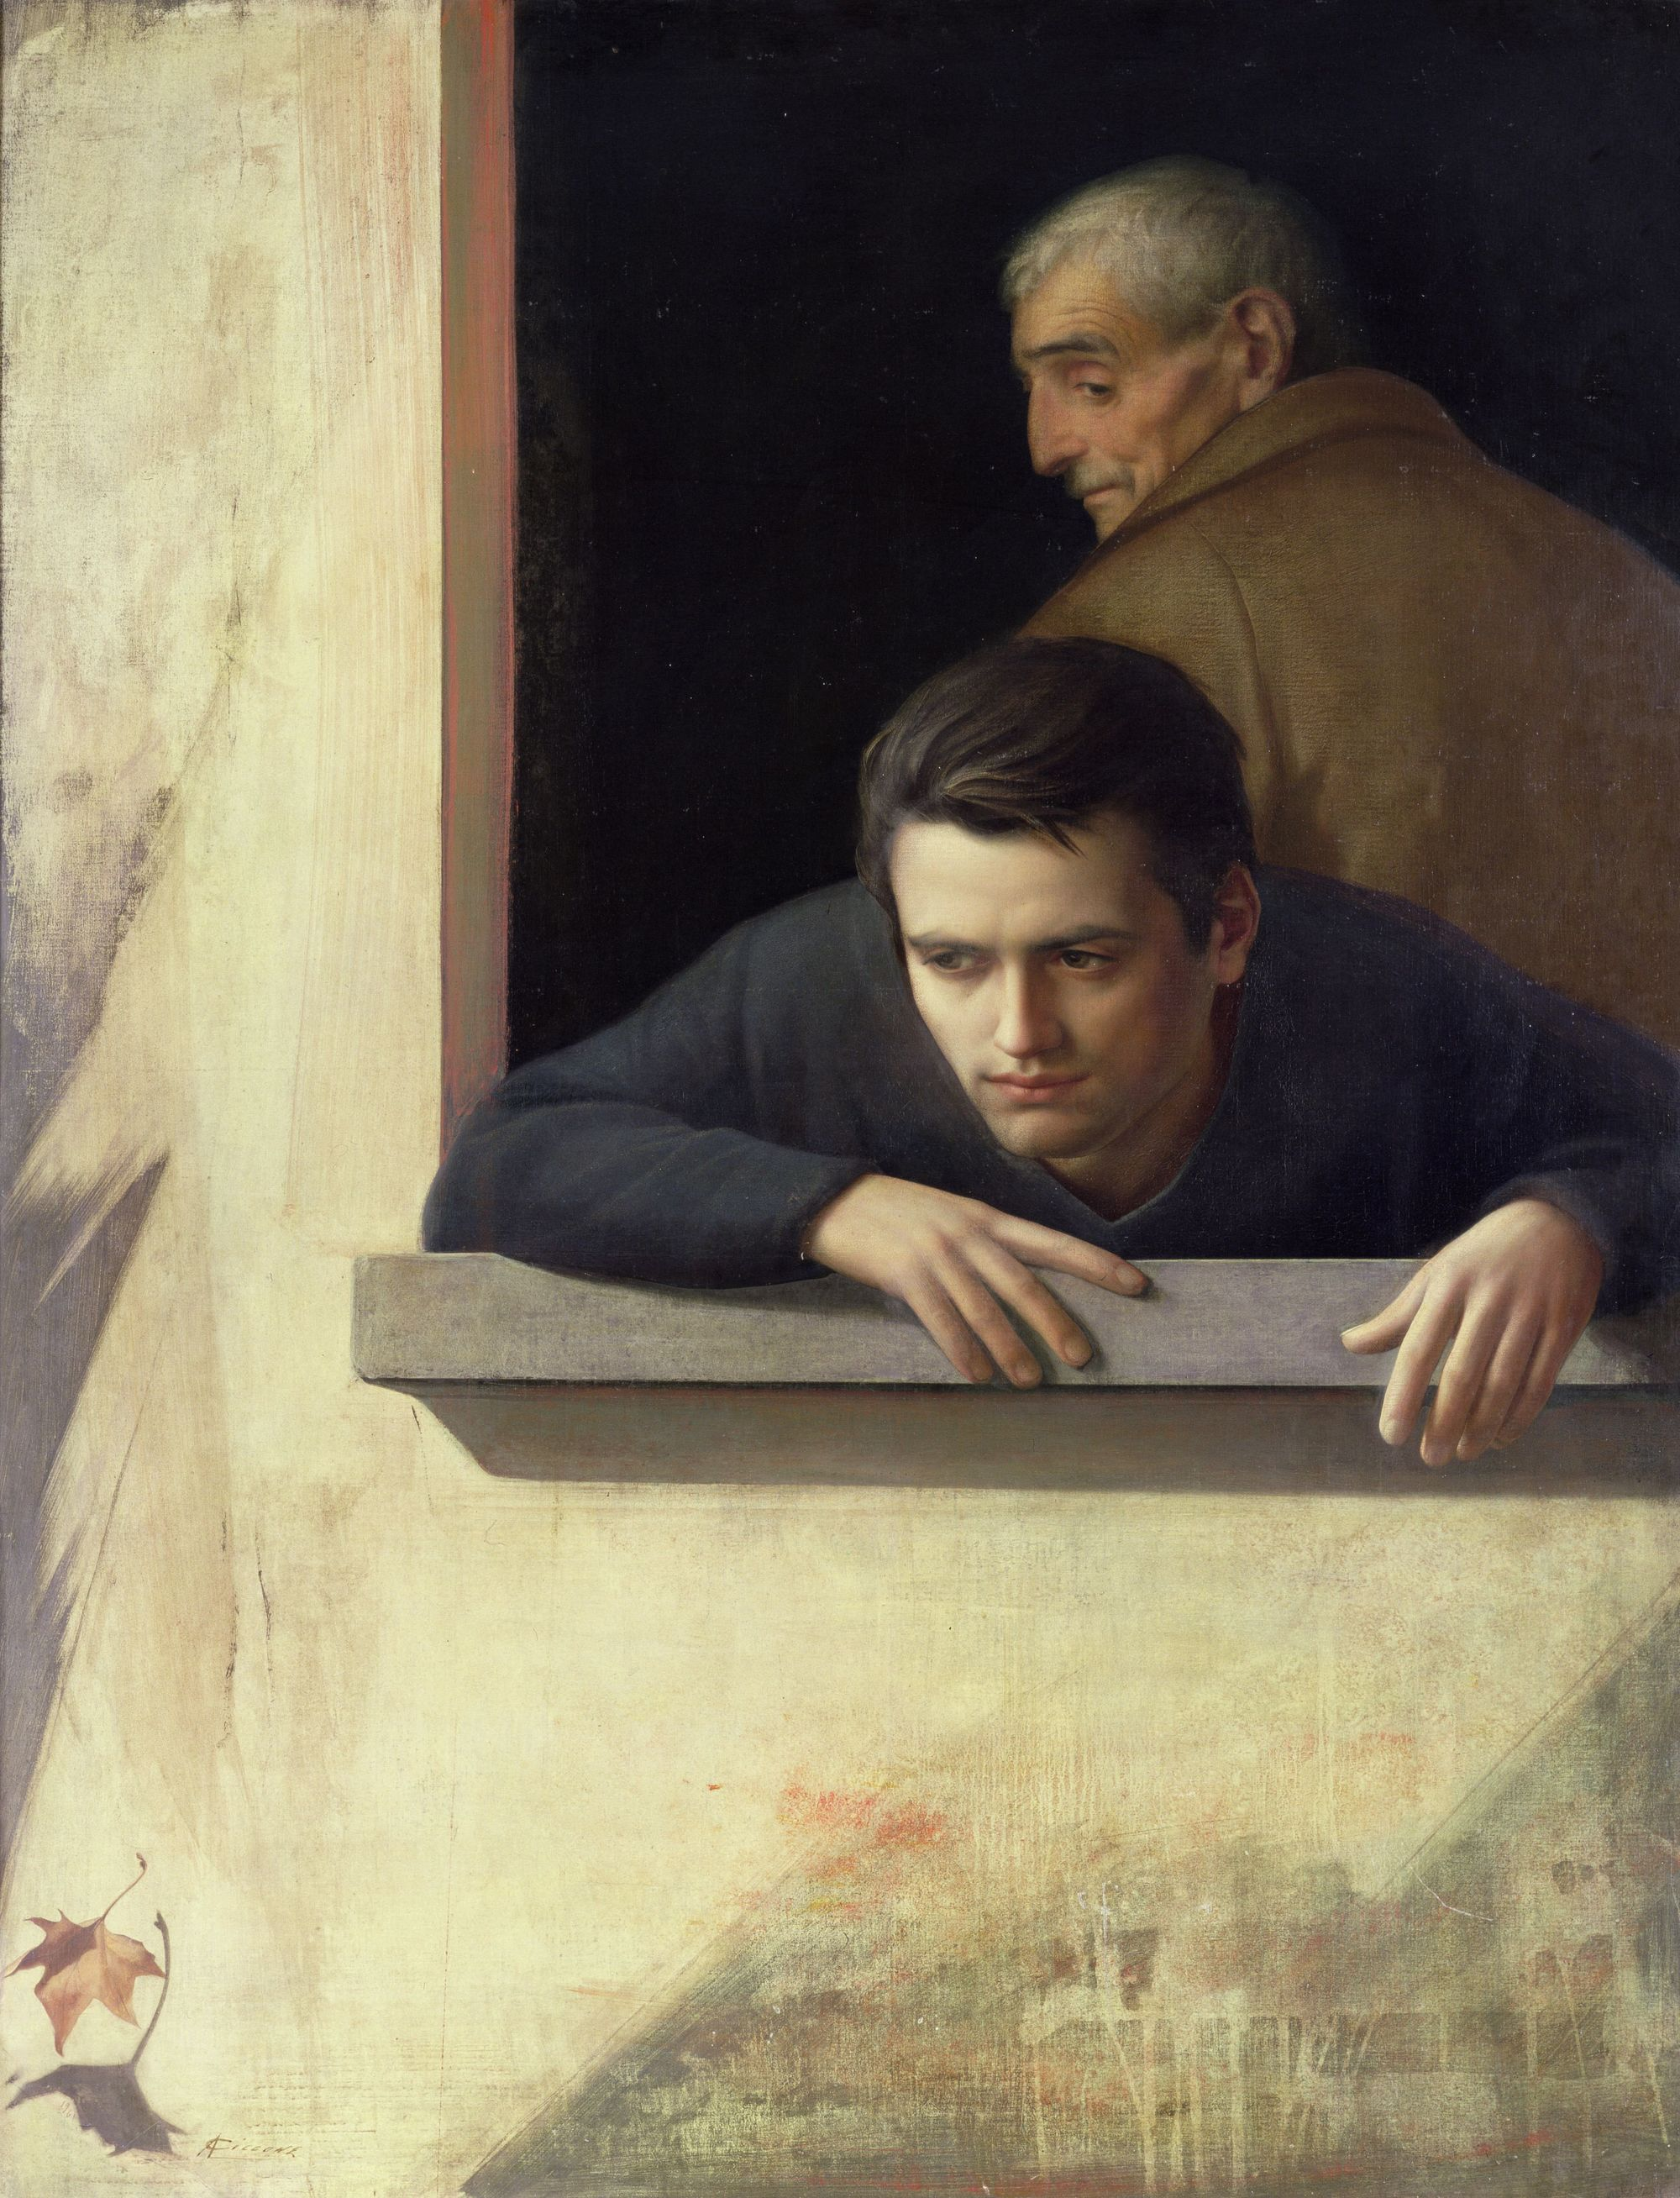 Antonio Ciccone, Les deux âges, 1960, tempera grasse, The Forbes Magazine Collection.